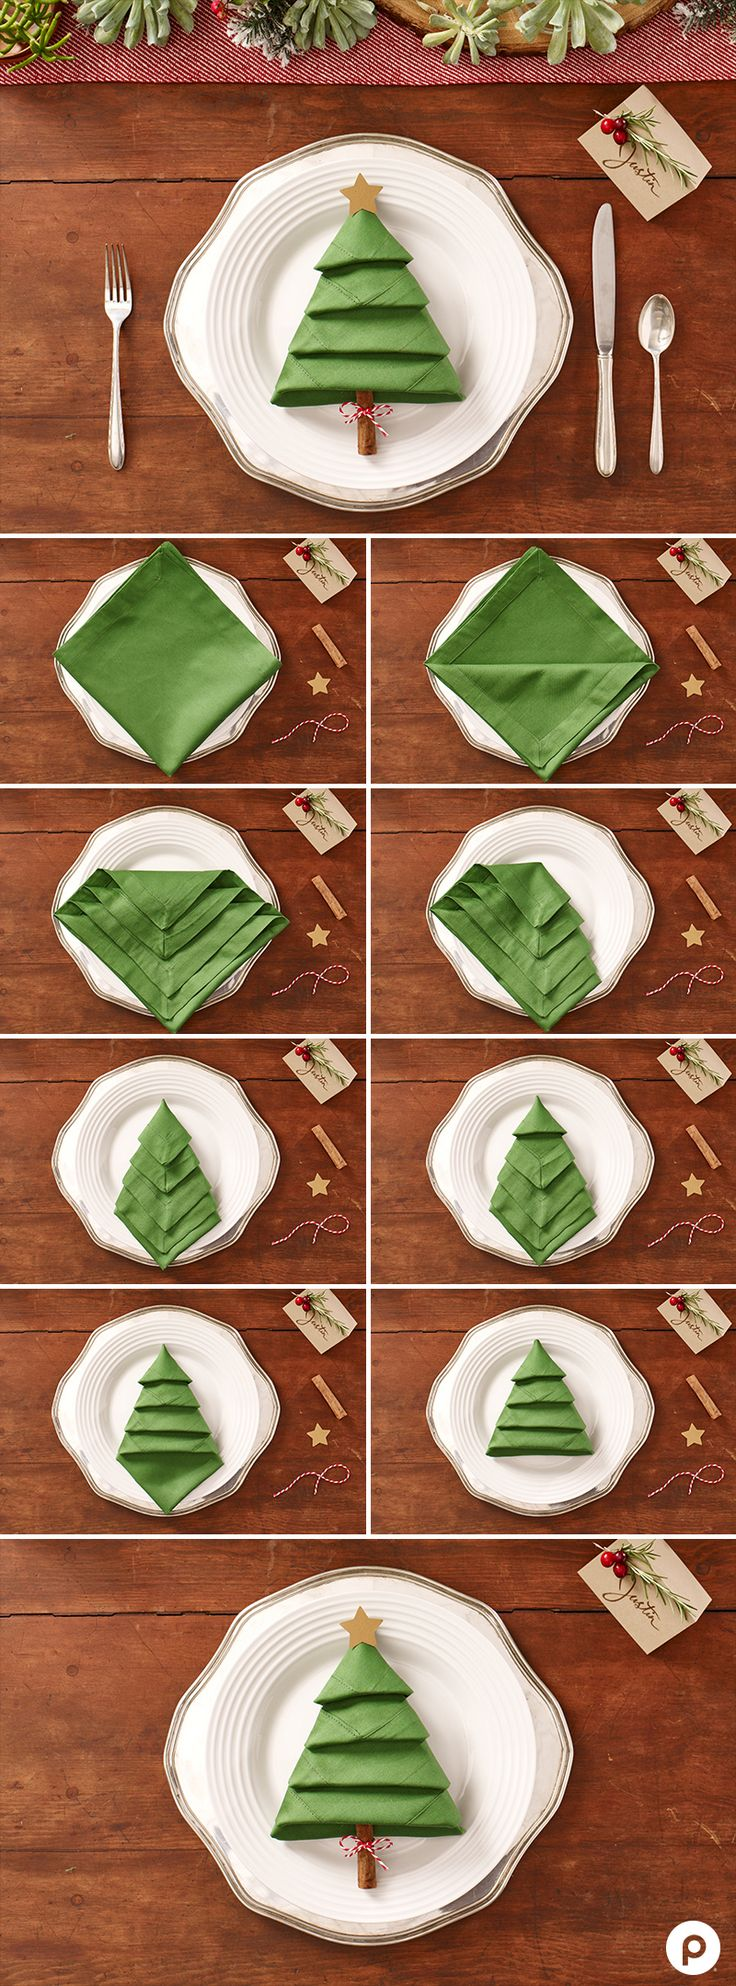 Best 25+ Folding napkins ideas on Pinterest | Napkin, Napkin ...